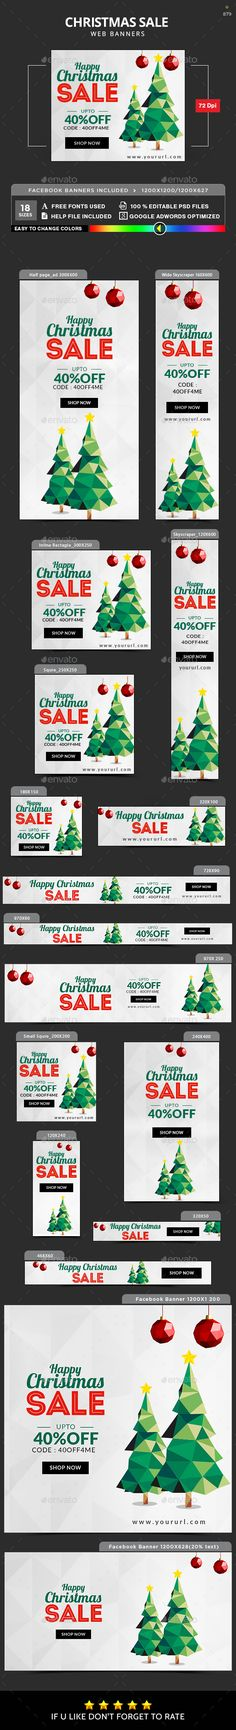 Christmas Sale Banner Set - Banners & Ads Web Elements Promote your Products and services with this great looking Banner Set. 18 awesome quality banner template PSD files, including Facebook ad sizes, ready for your Services, products, campaigns.Each PSD files are layered and fully organized. You can use this banners for google adwords & Adroll too. ( All google adwords, Adroll banner sizes included